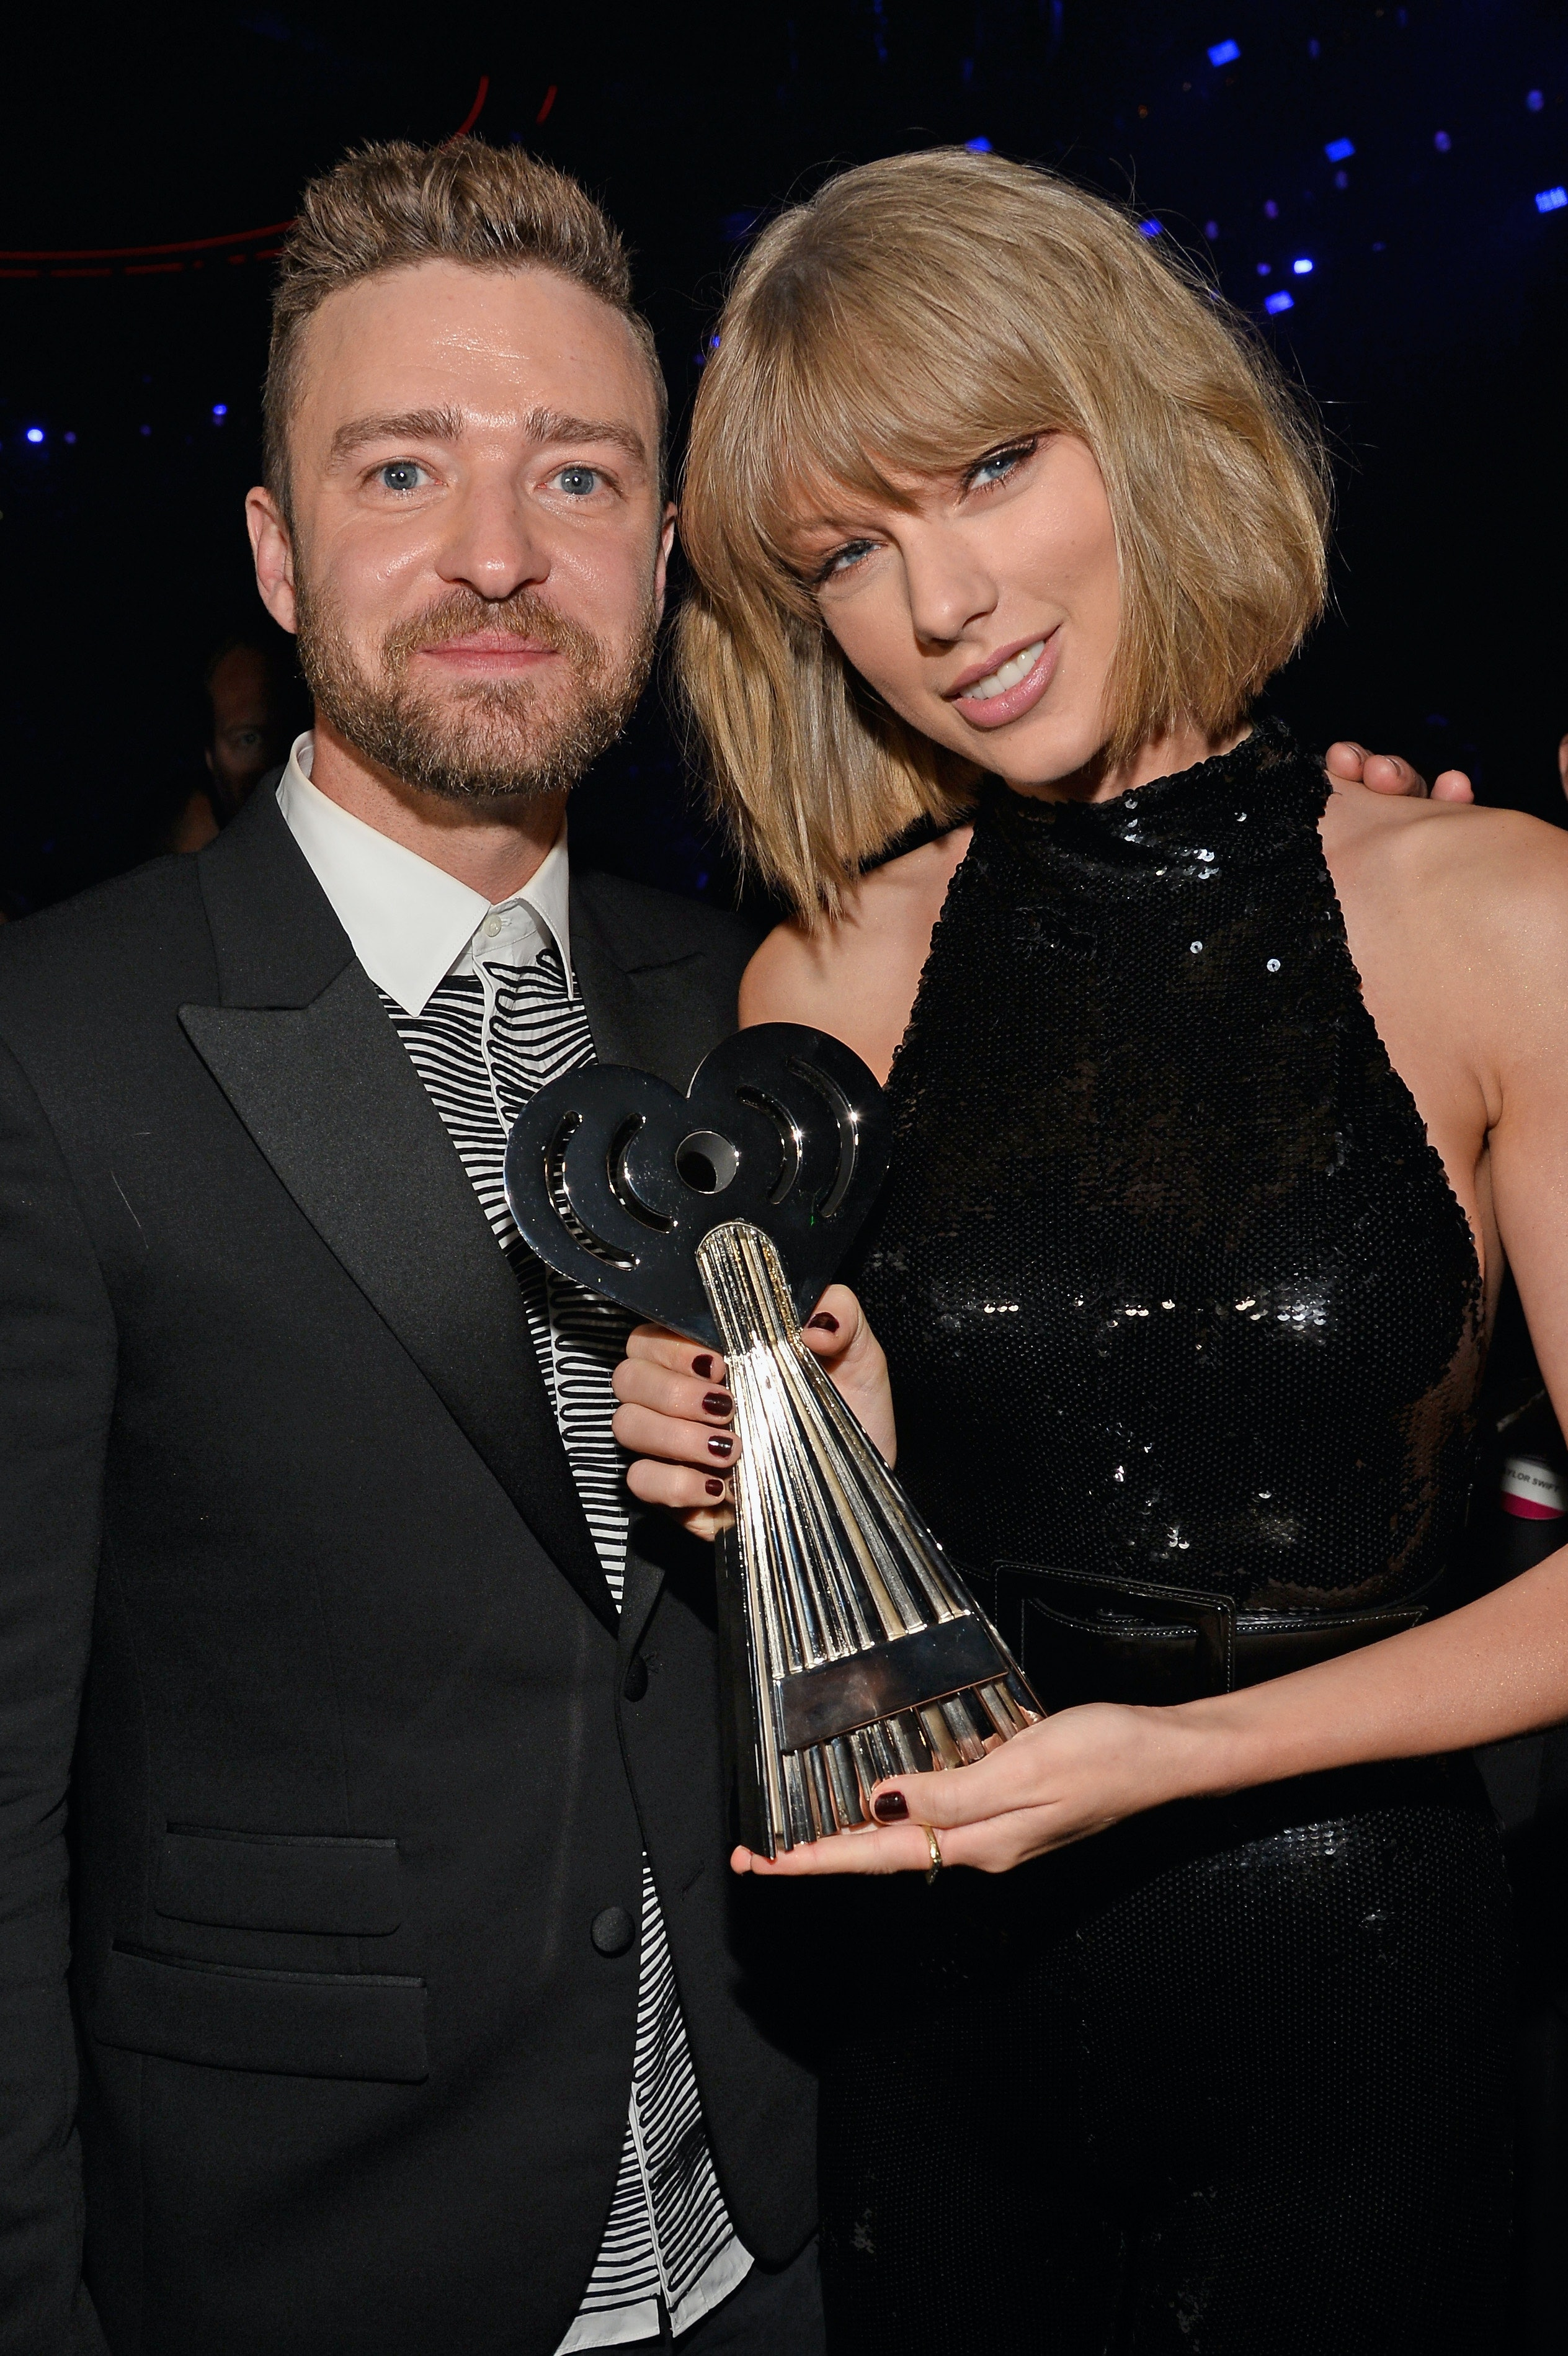 Justin Timberlake Tells Taylor Swift To Text Him Proves There S Better Things Than Winning